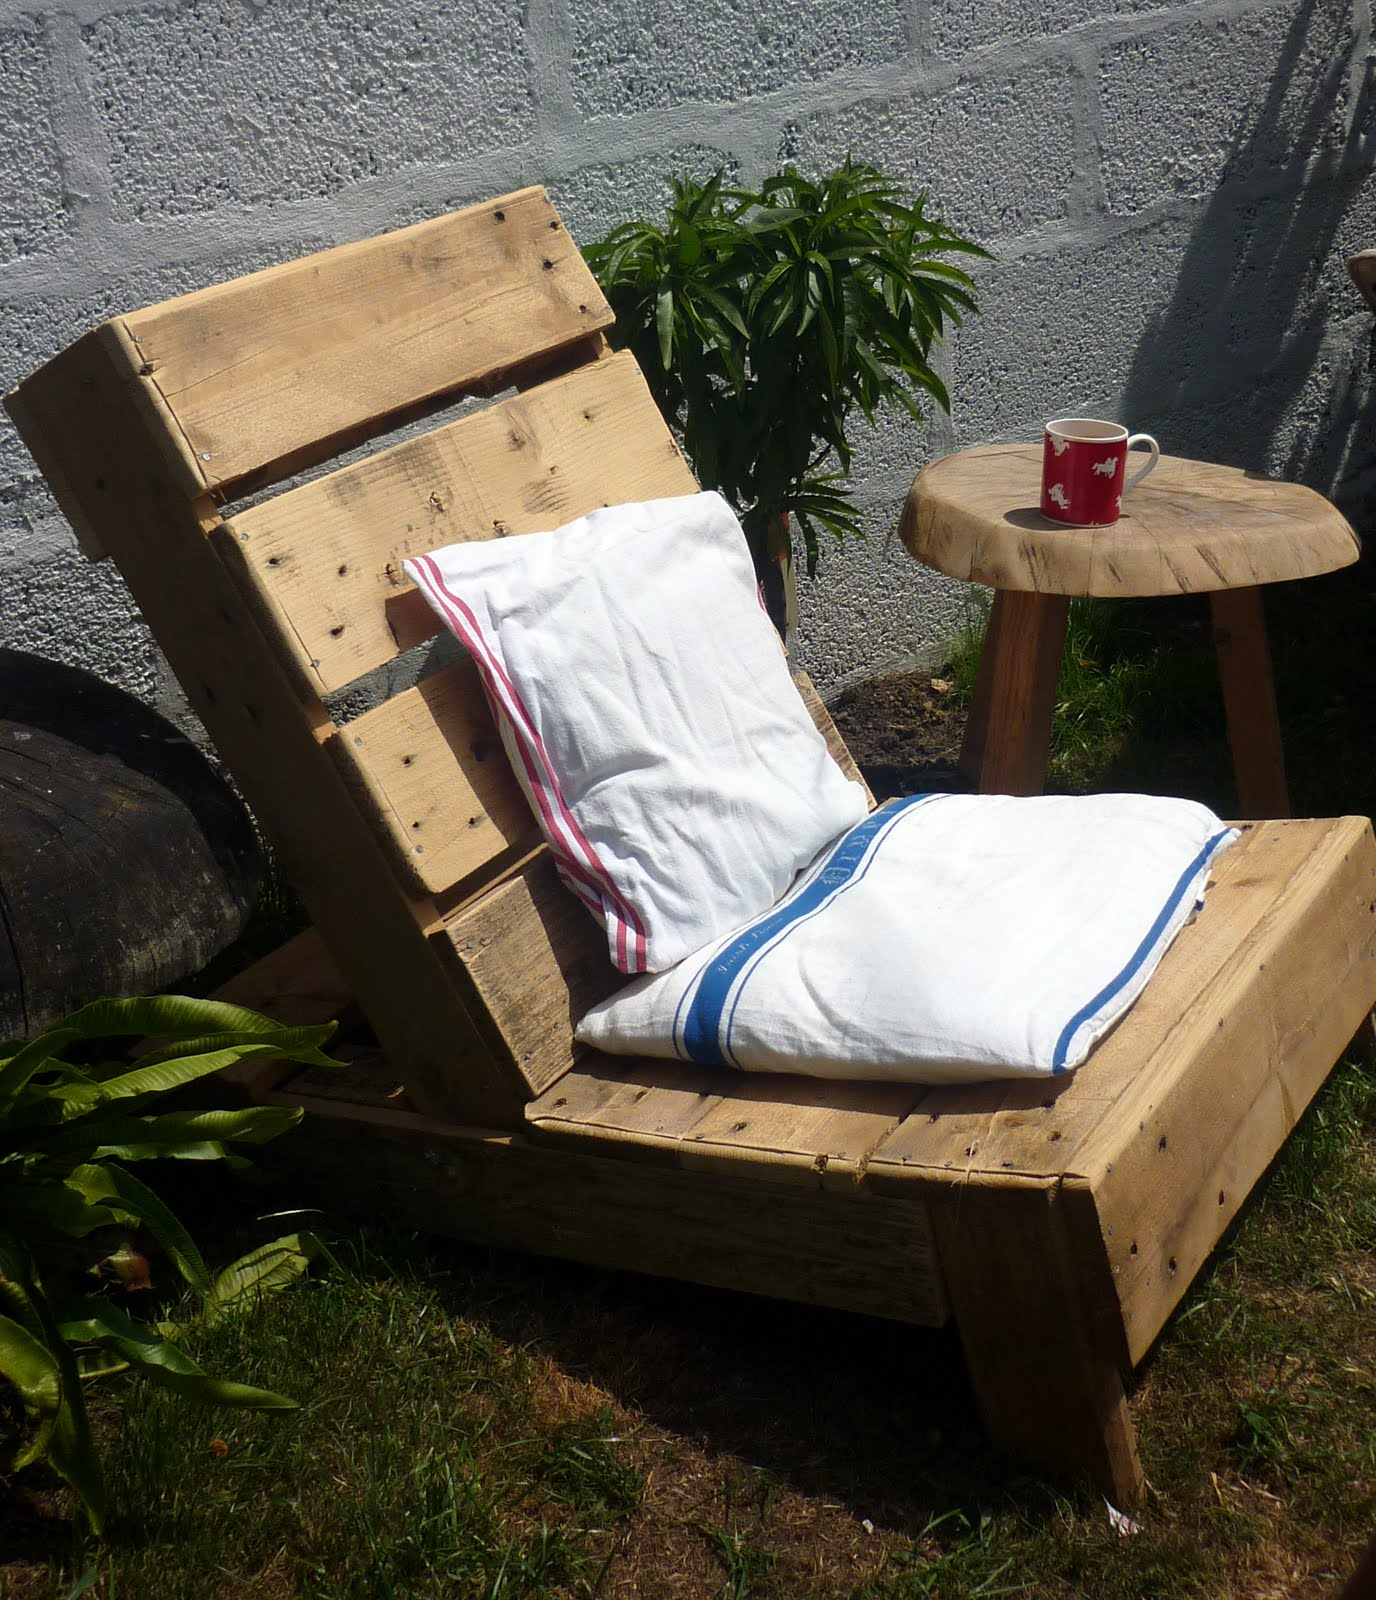 Pallet Chair: Sixty One A: Upcycled Pallet Chair